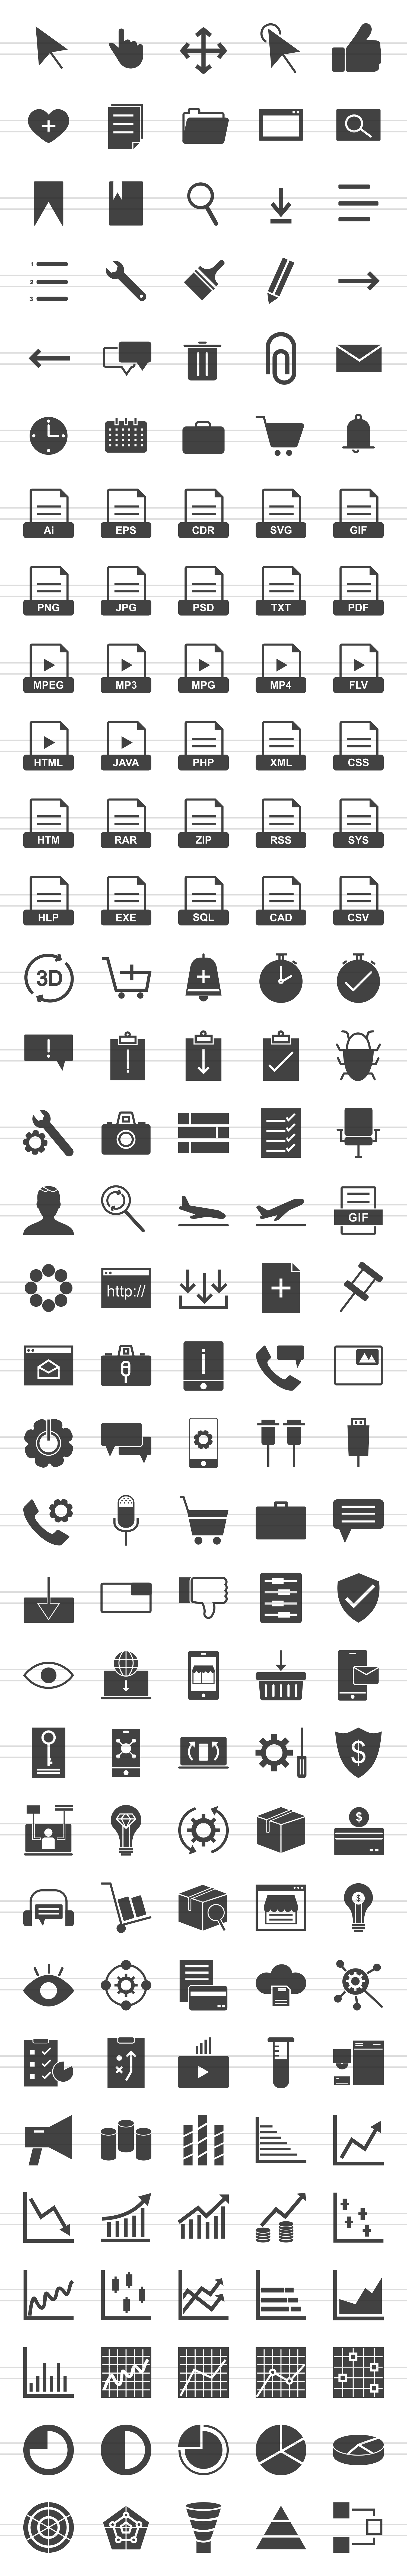 166 Interface Glyph Icons example image 2